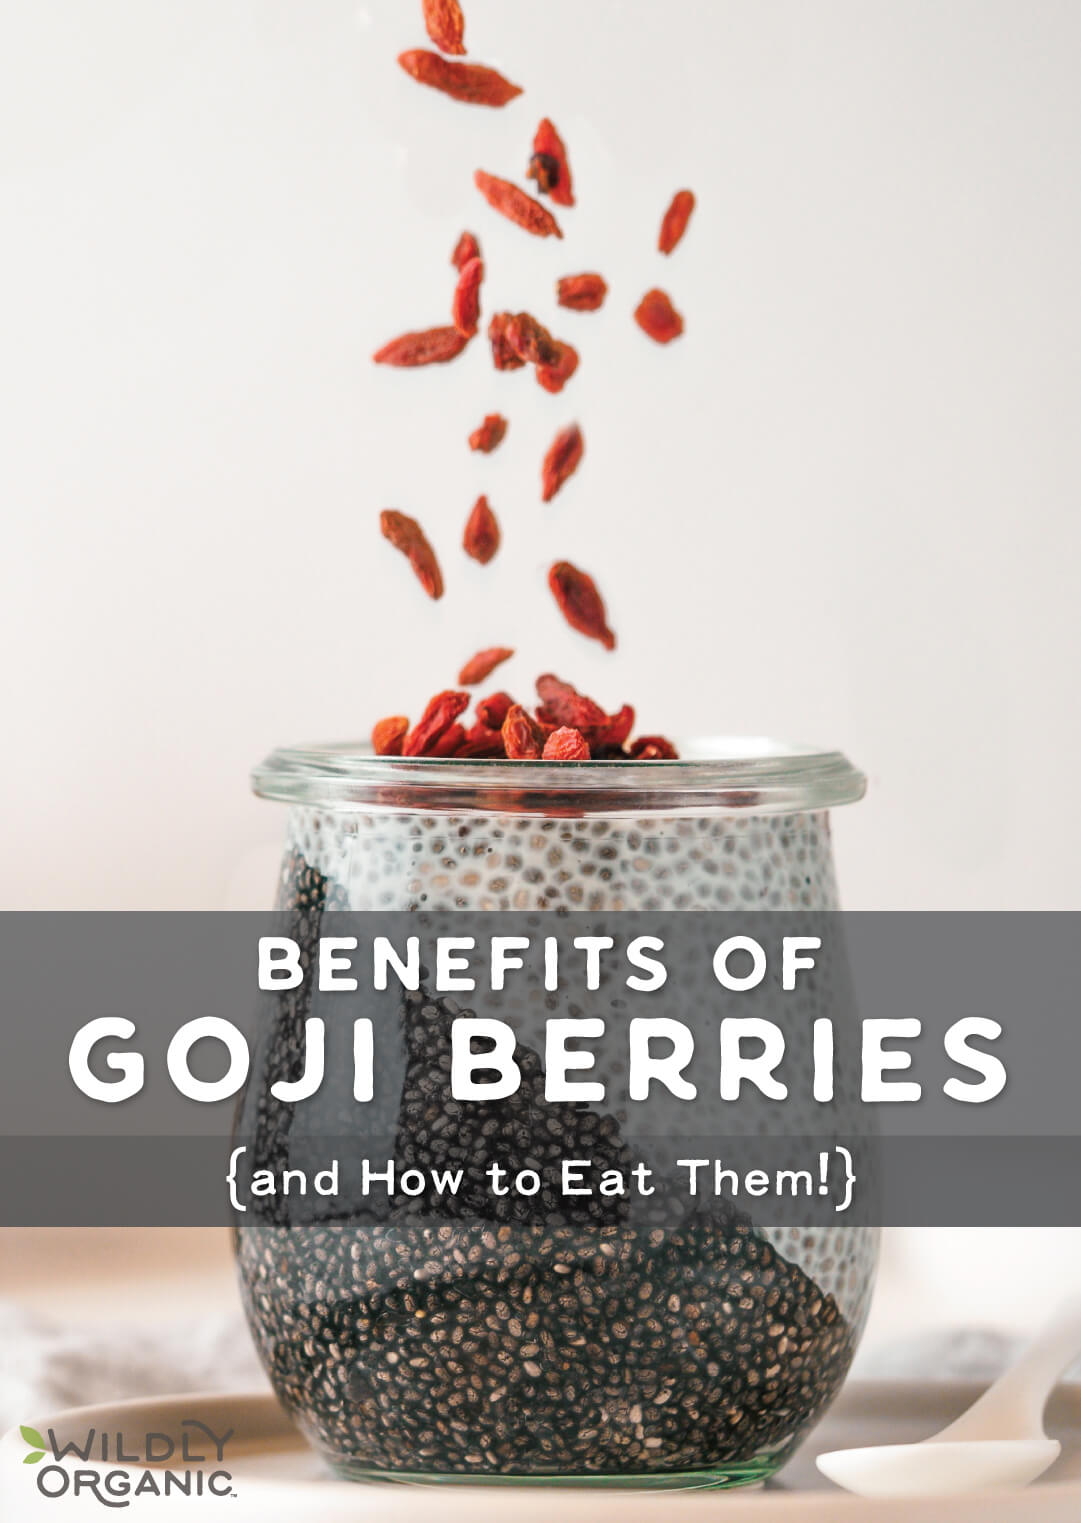 Benefits Of Goji Berries And How To Eat Them